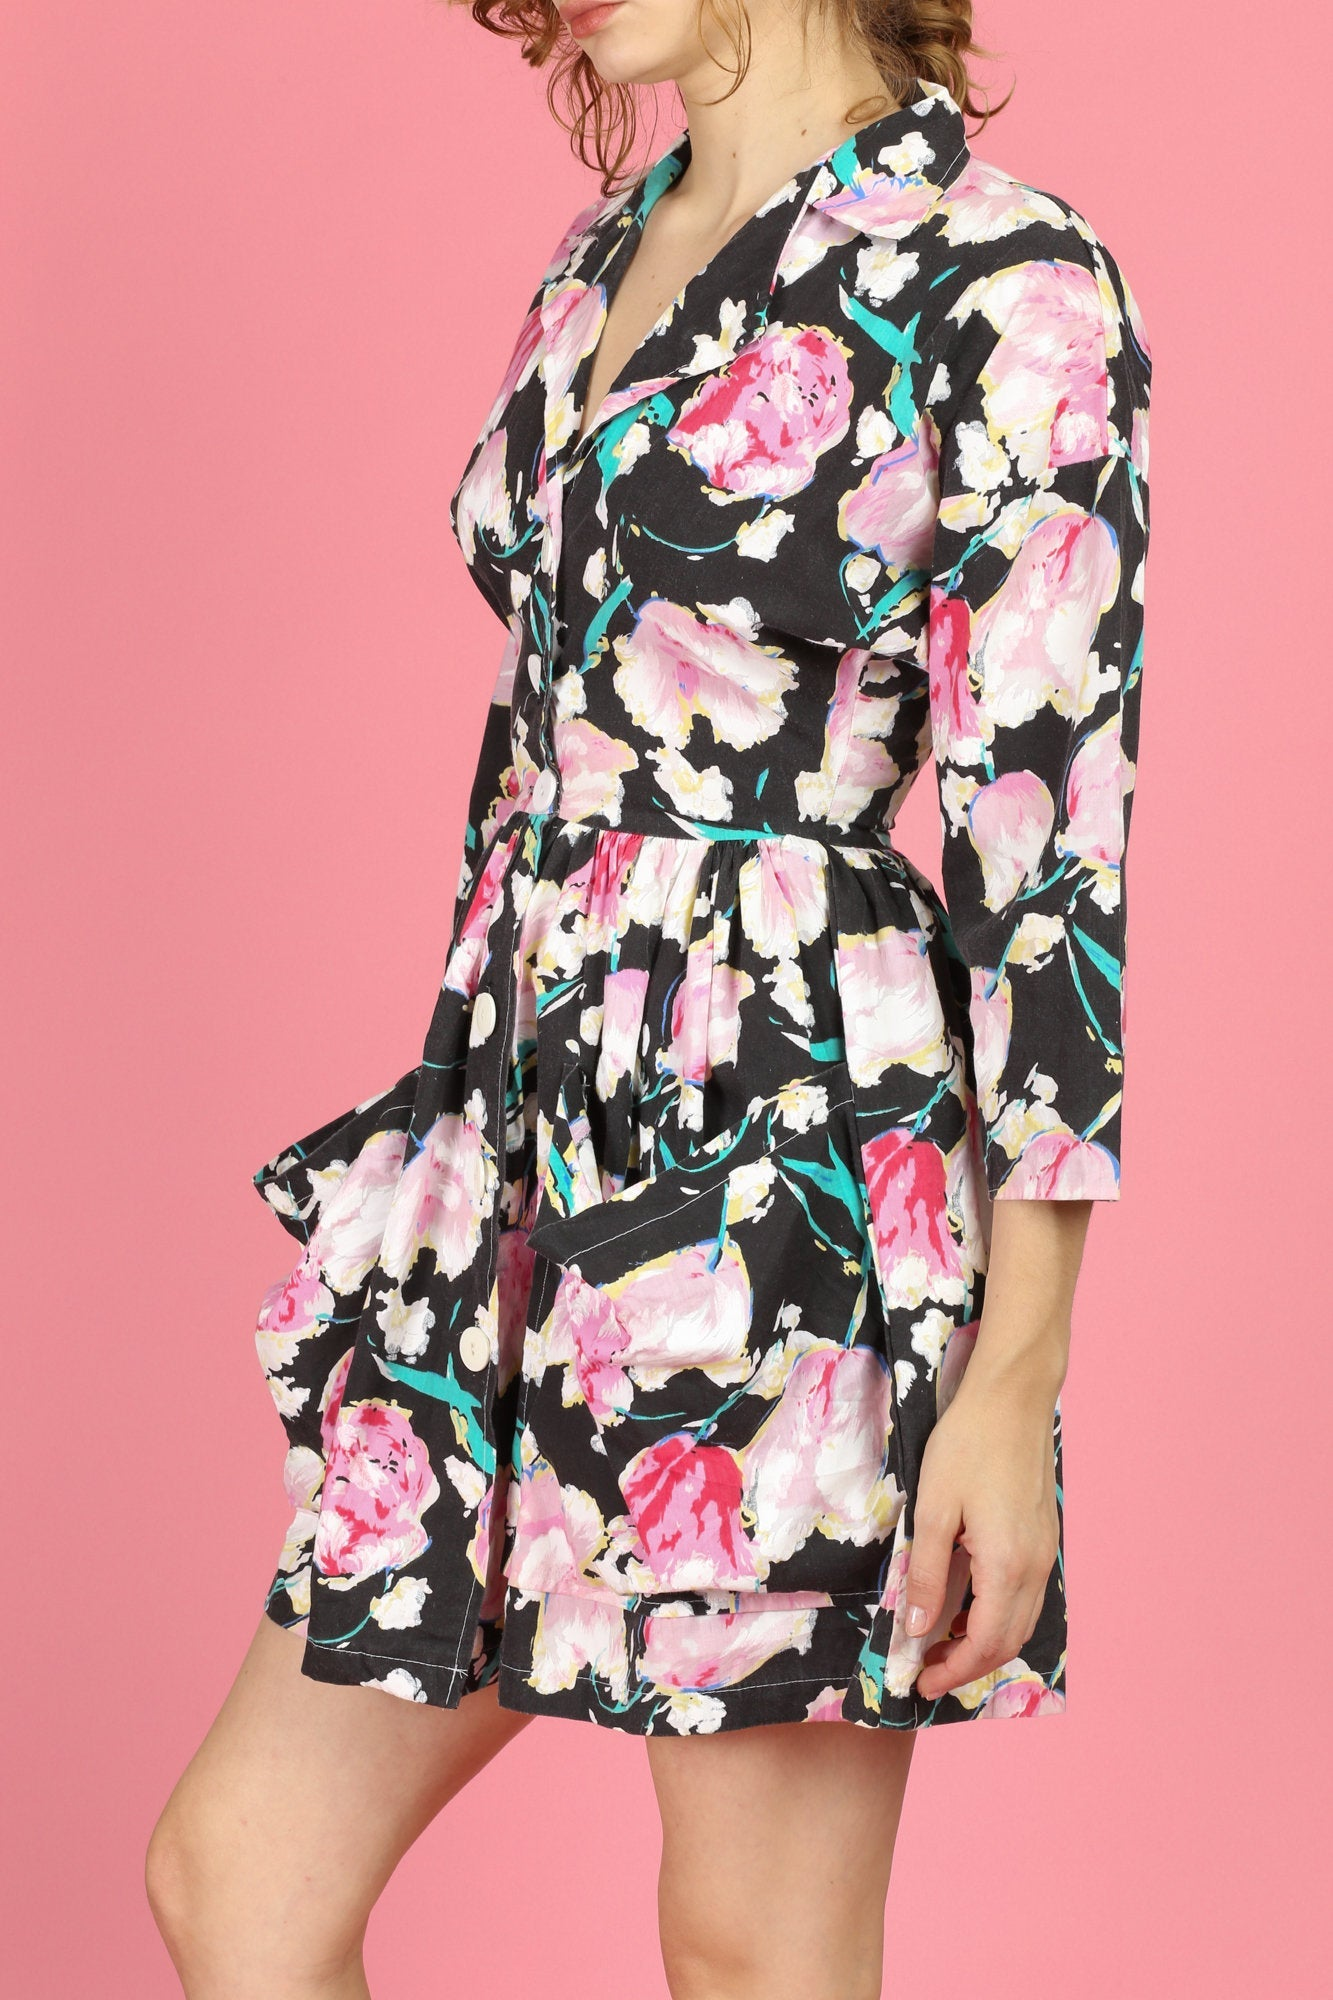 Vintage Floral Fit & Flare Dress - Extra Small